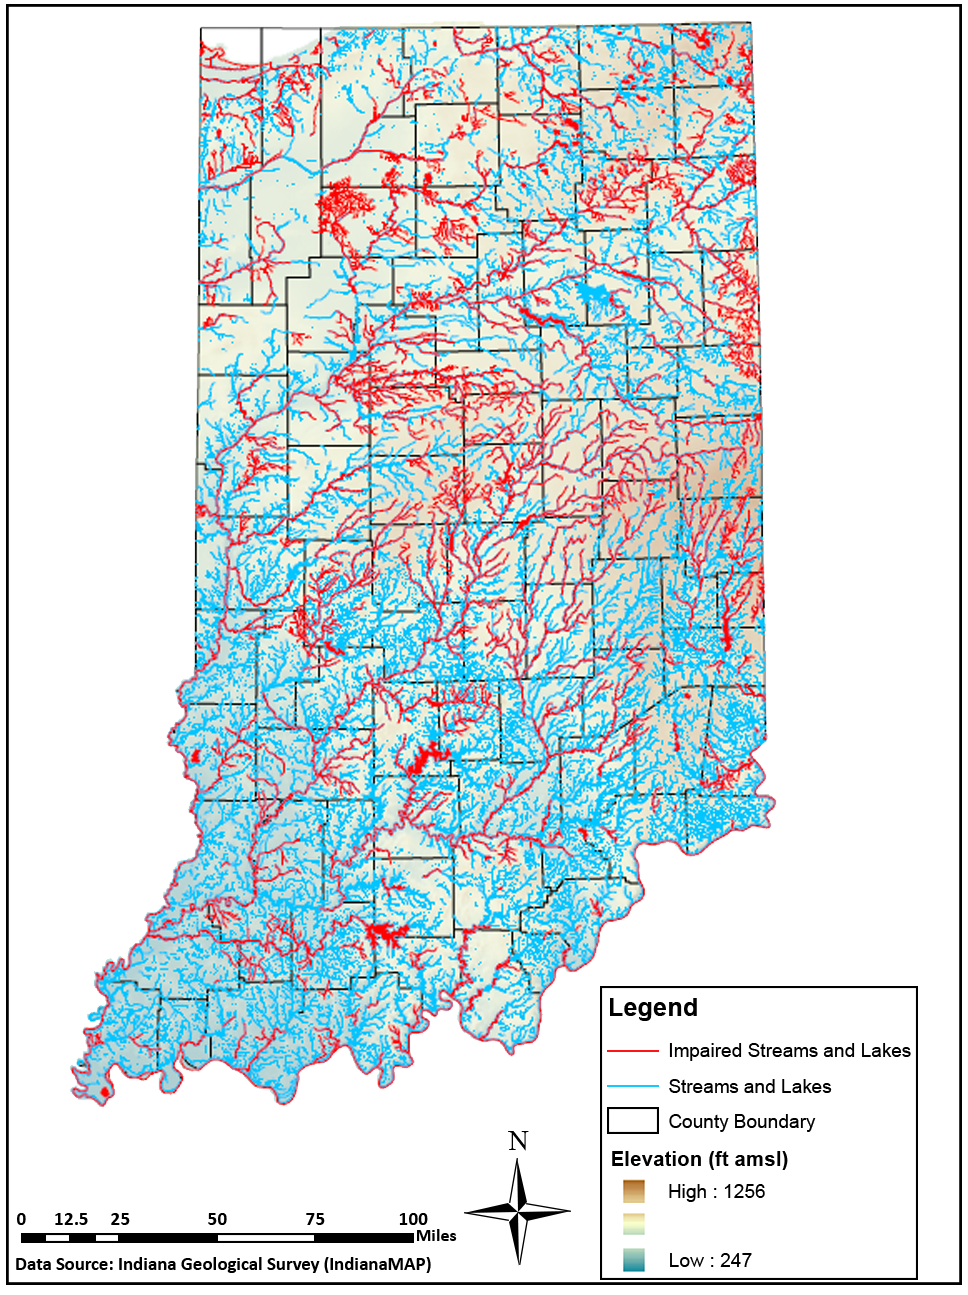 Figure 7. Category 5 impaired streams and lakes in Indiana (IDEM, 2016).